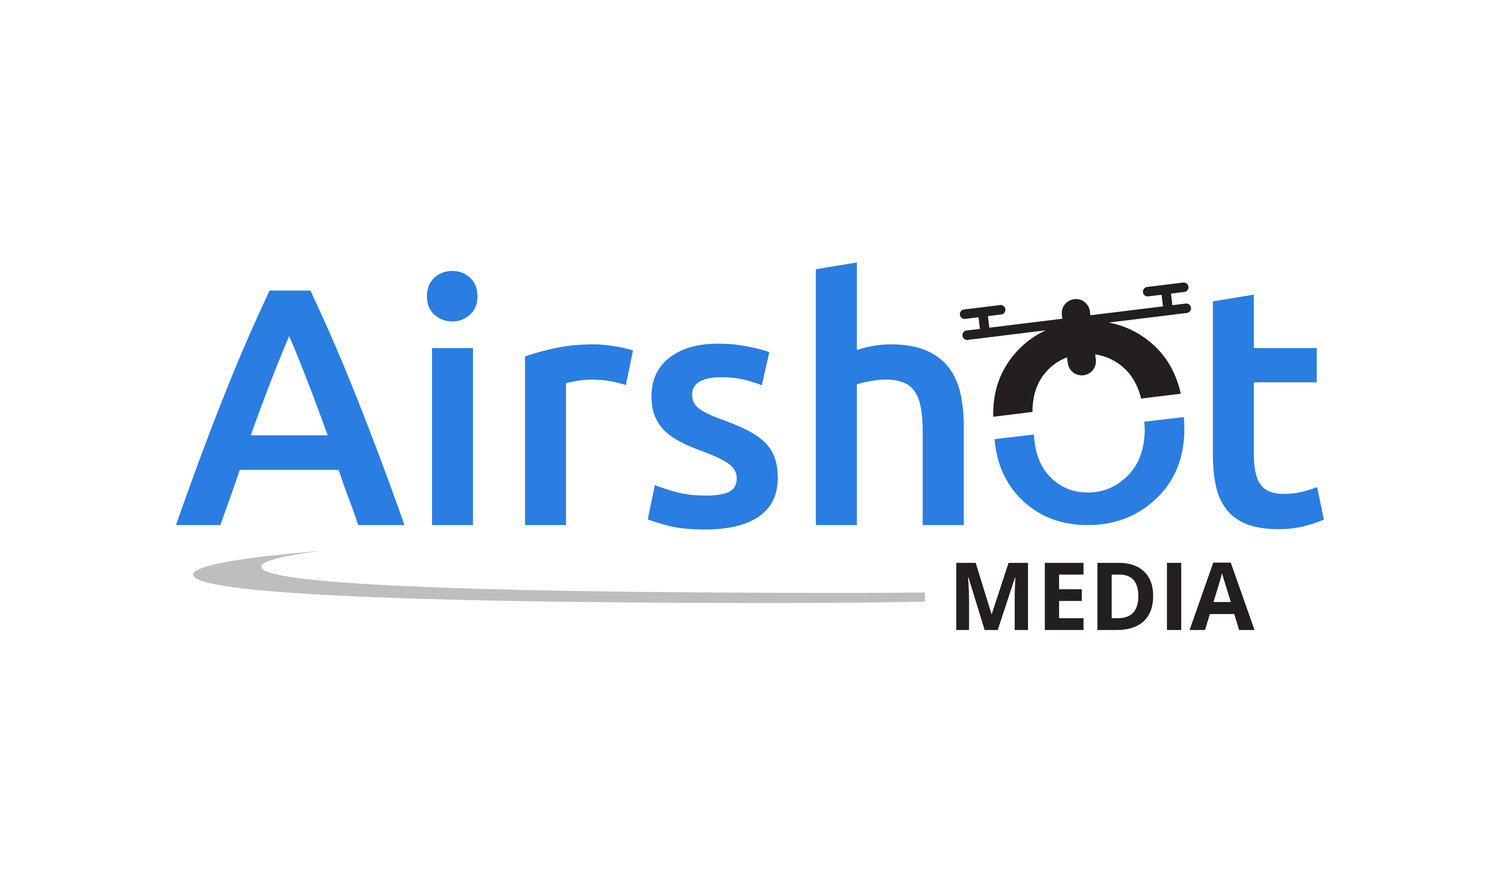 Airshot Media - See the World from a Different Perceptive